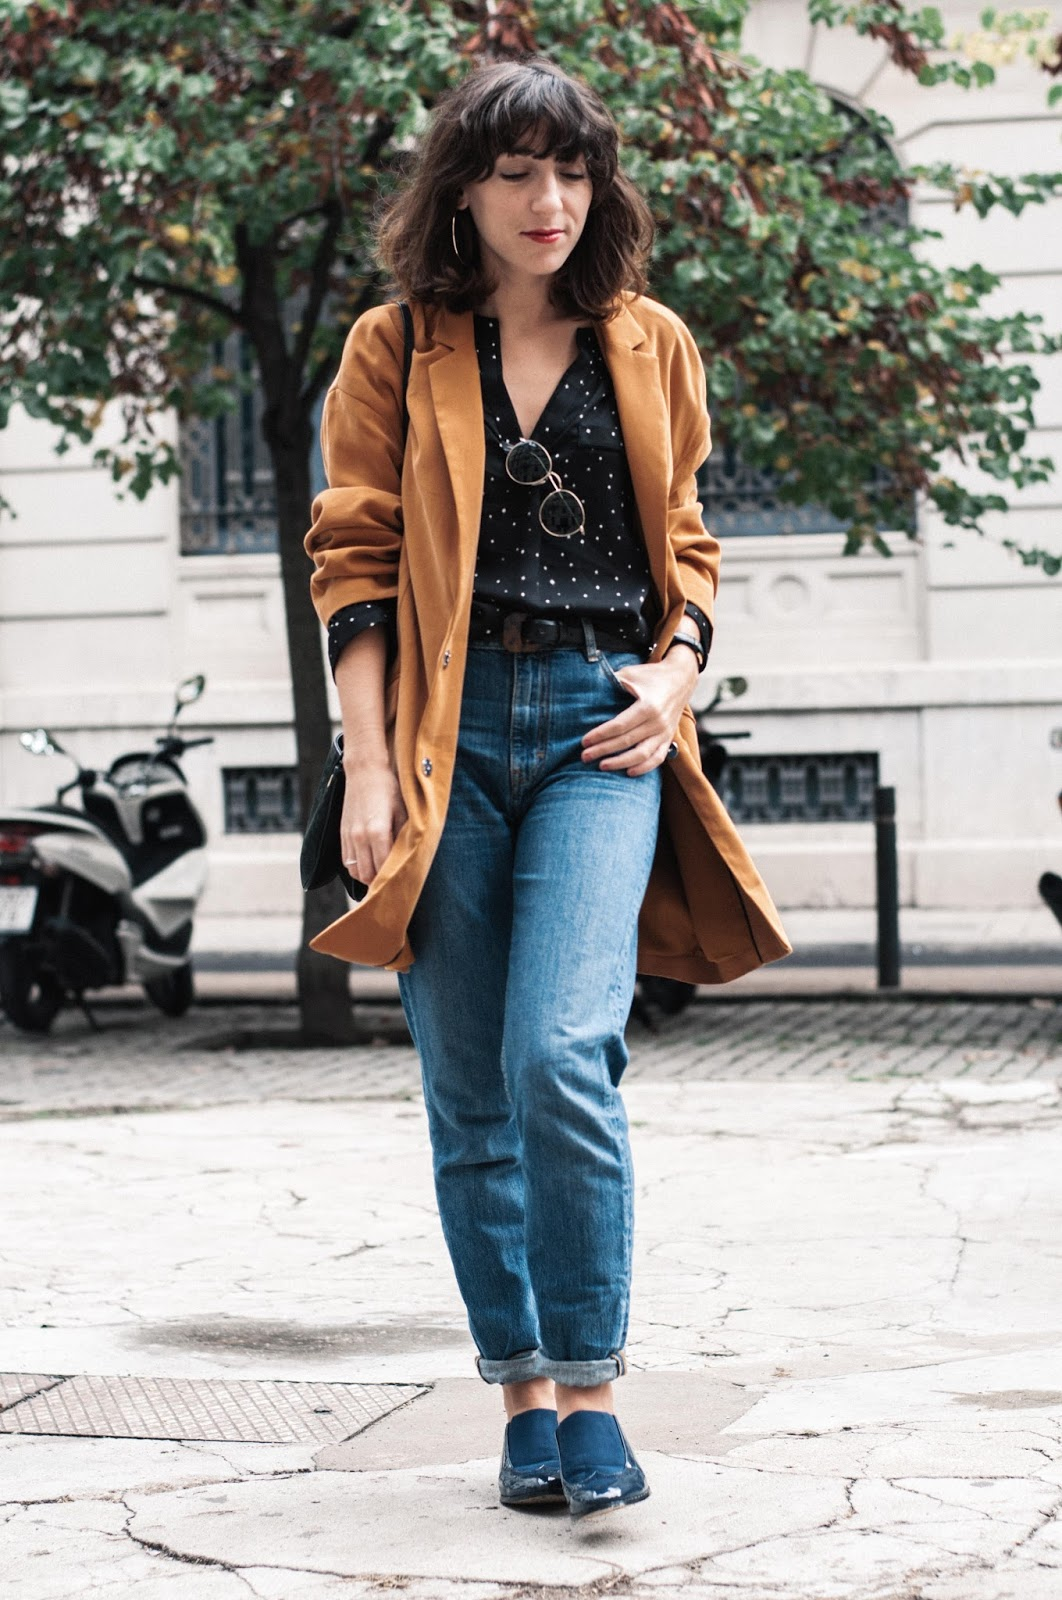 Jeans Maje, blusa H&M, blazer Mango, zapatos Menbur, bolso & Other Stories